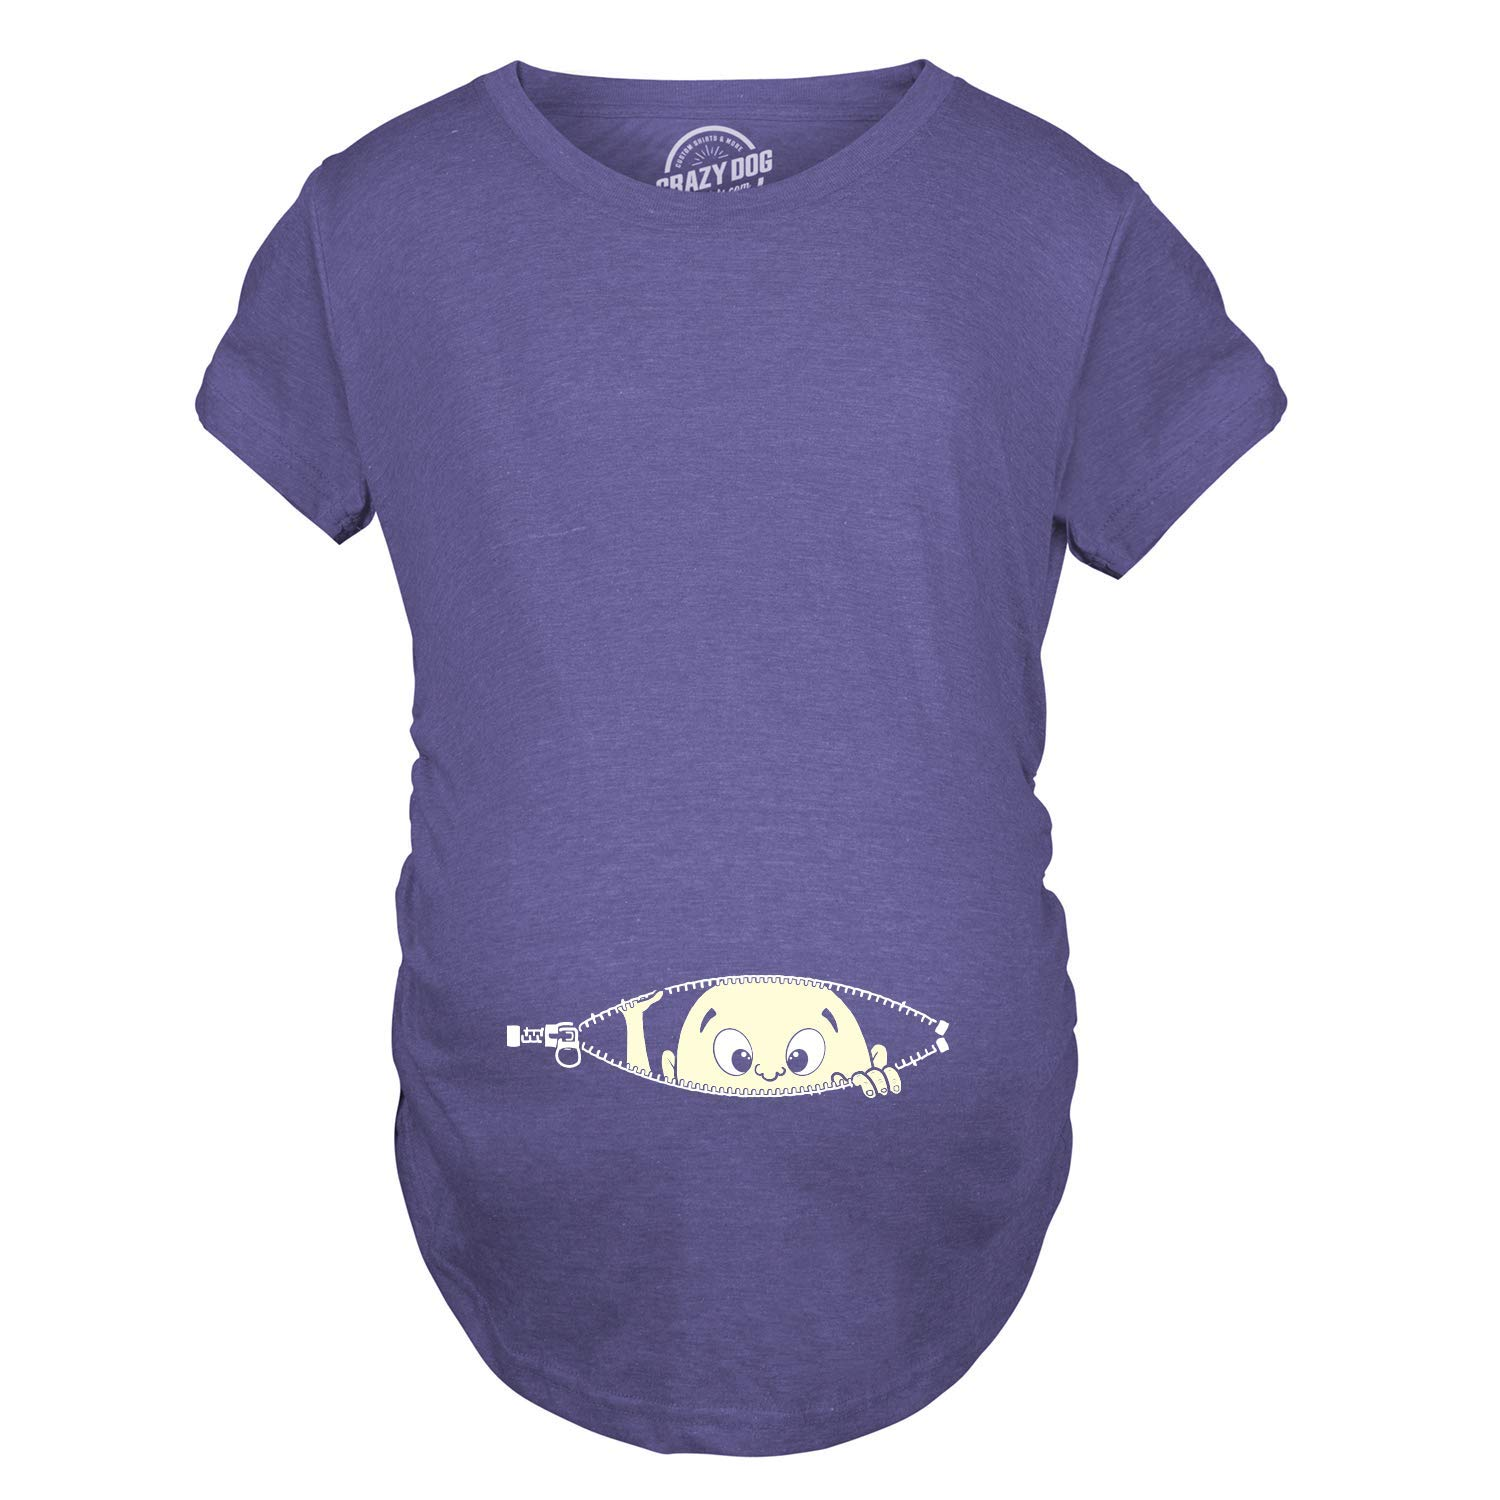 b3f41226821 Maternity Baby Peeking T Shirt Funny Pregnancy Tee for Expecting Mothers  (Heather Purple) -S  Amazon.co.uk  Clothing